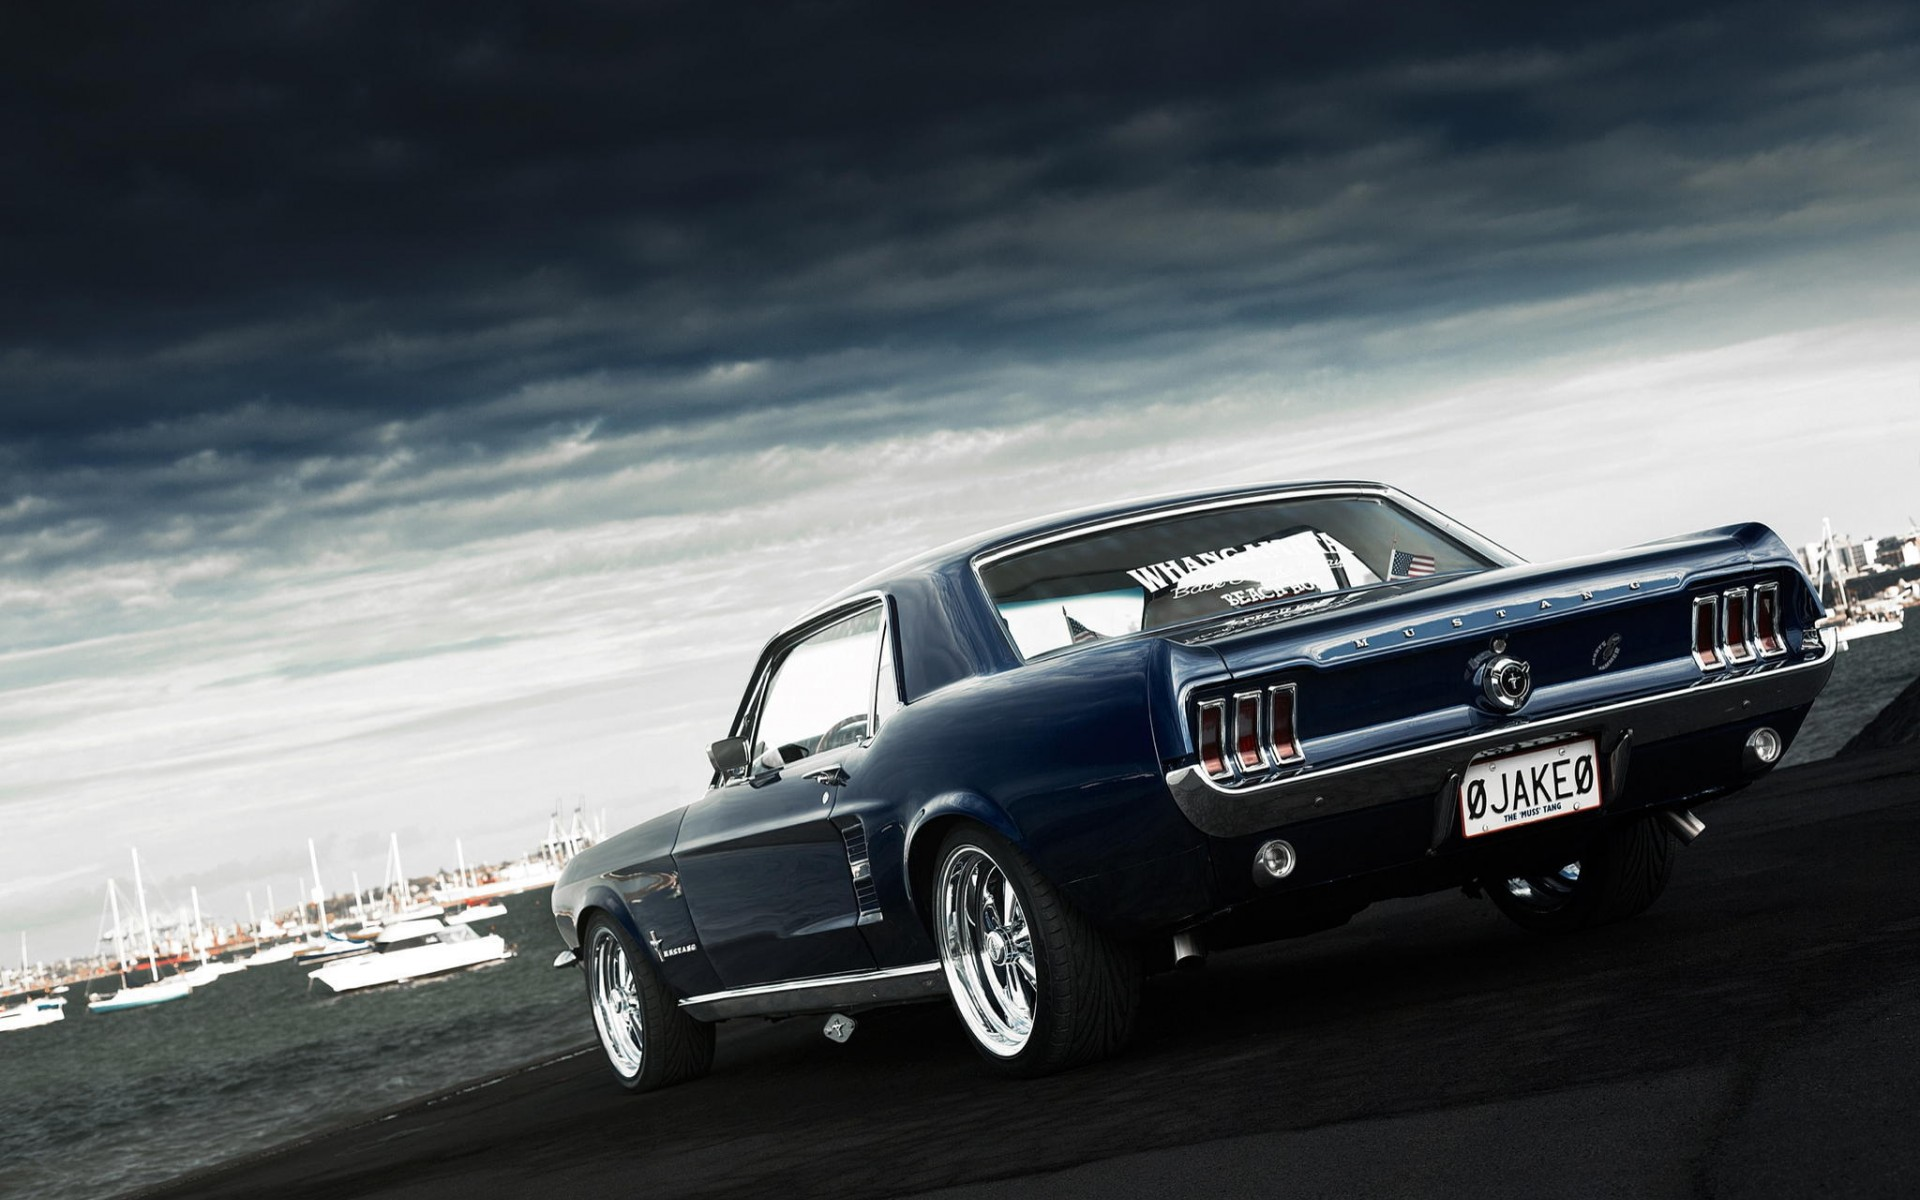 Iphone 6 Plus Muscle Car Wallpaper Ford Mustang Full Hd Wallpaper And Background 1920x1200